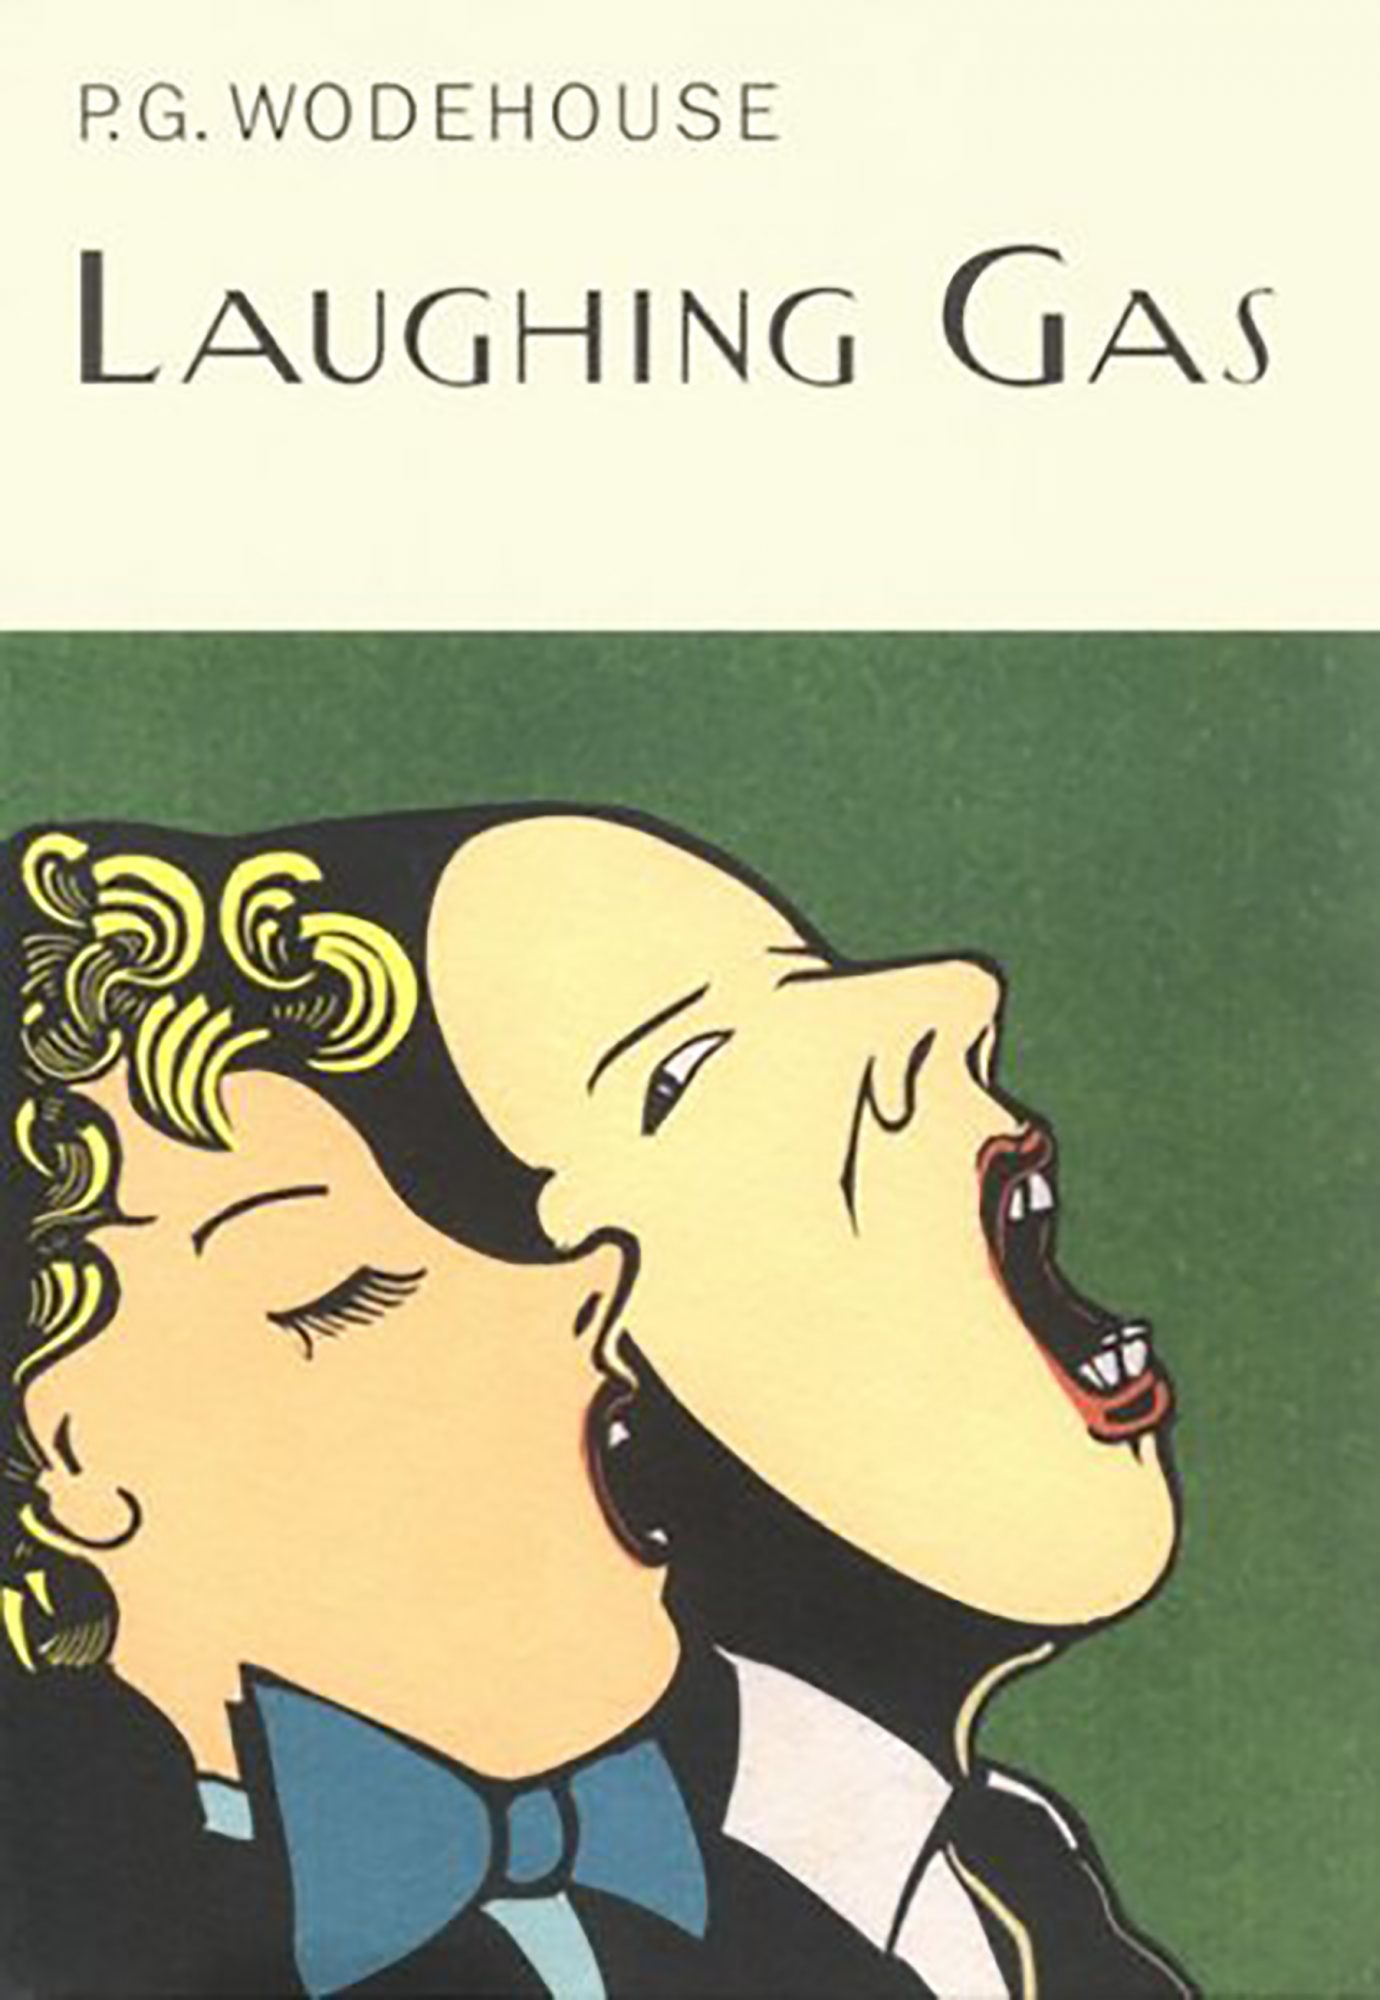 Laughing Gas, by P.G. Wodehouse